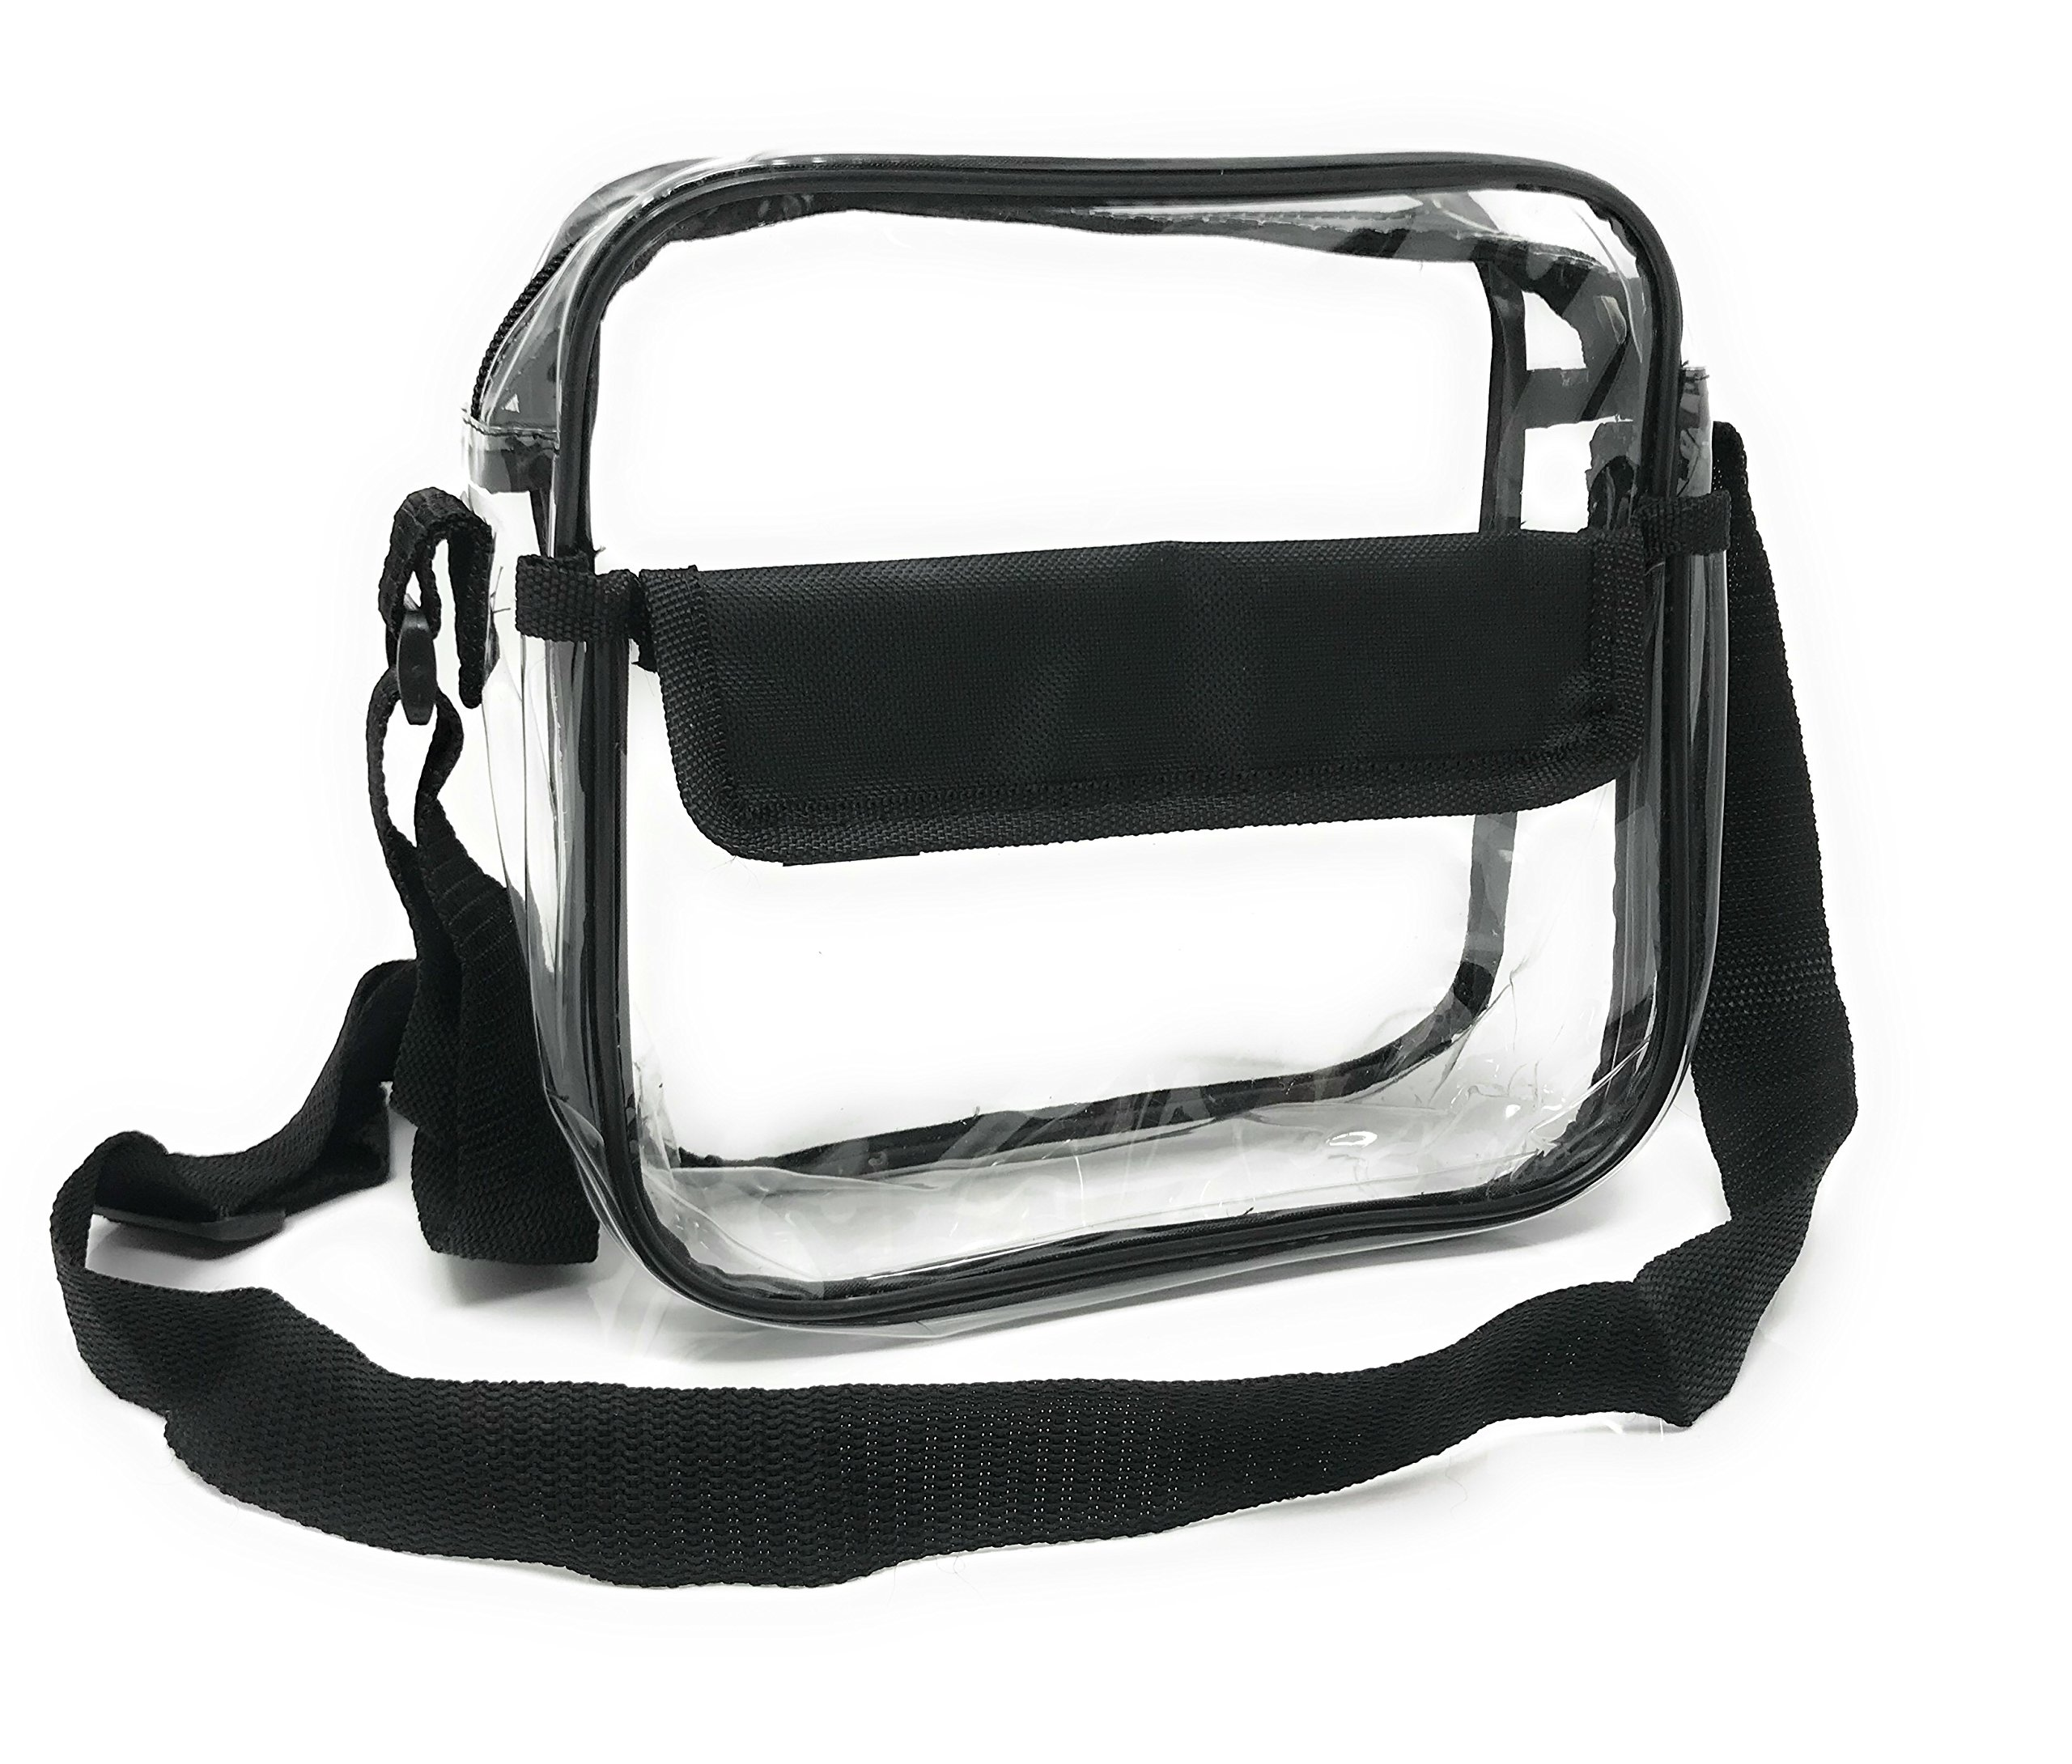 Premium Clear Bag - NFL Stadium Approved Messenger Bag Zippered for Security - Quality Crossbody Purse Messenger Design for Concerts & Games - 10'' x 10'' x 3.5''